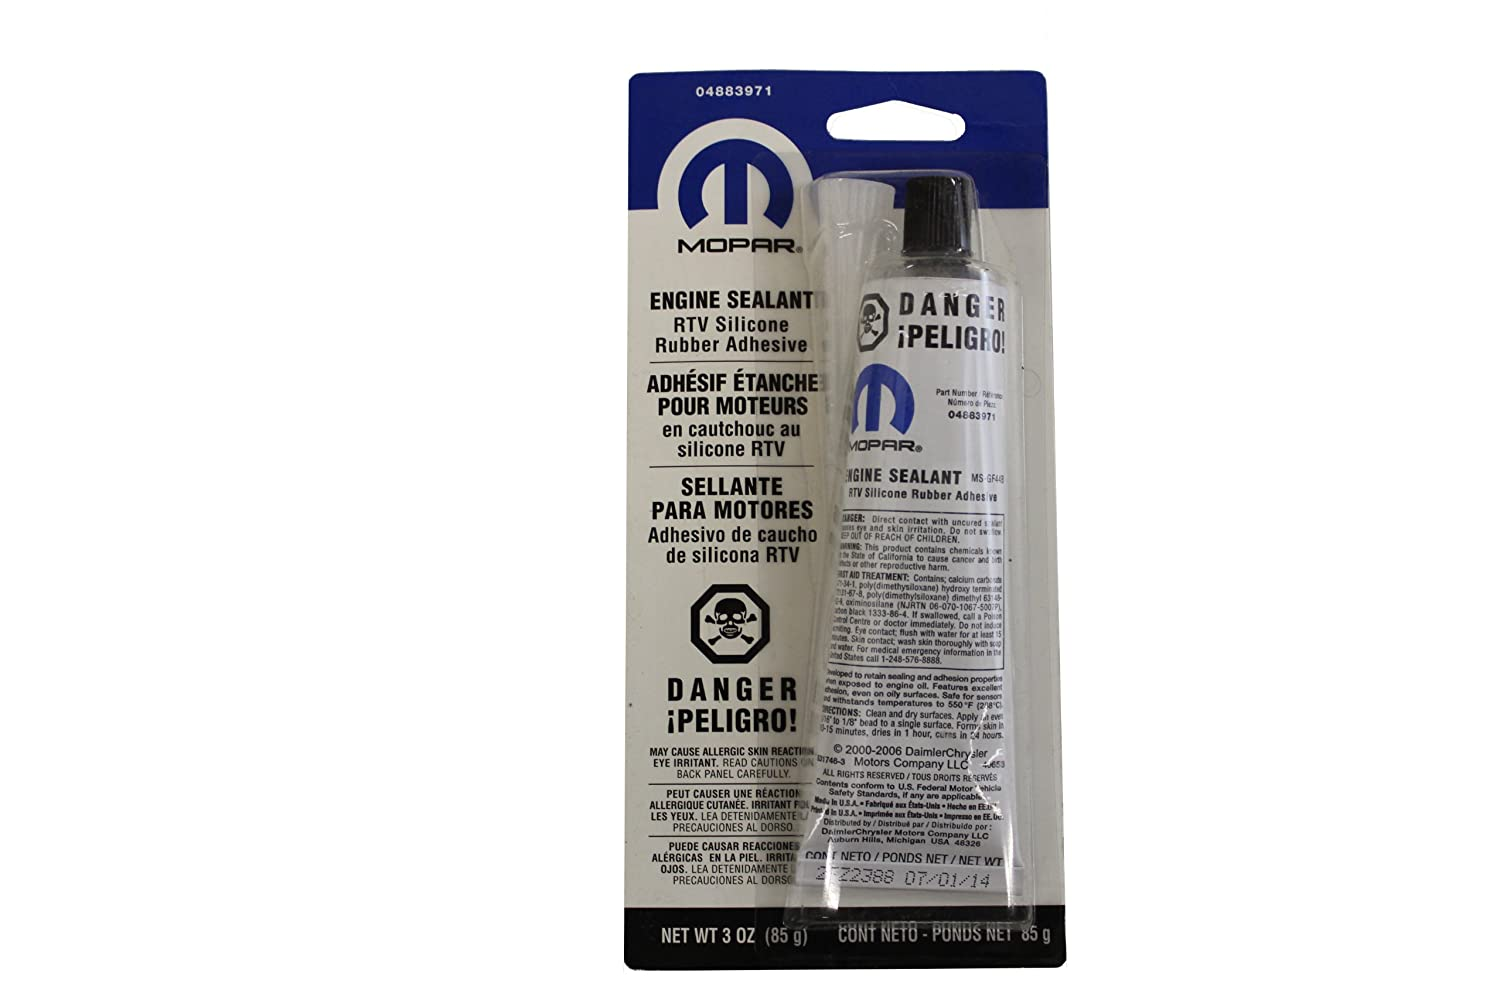 Genuine Chrysler Accessories 4883971 RTV Silicone Rubber Adhesive Engine Sealant - 3 oz. Tube 4883971AB